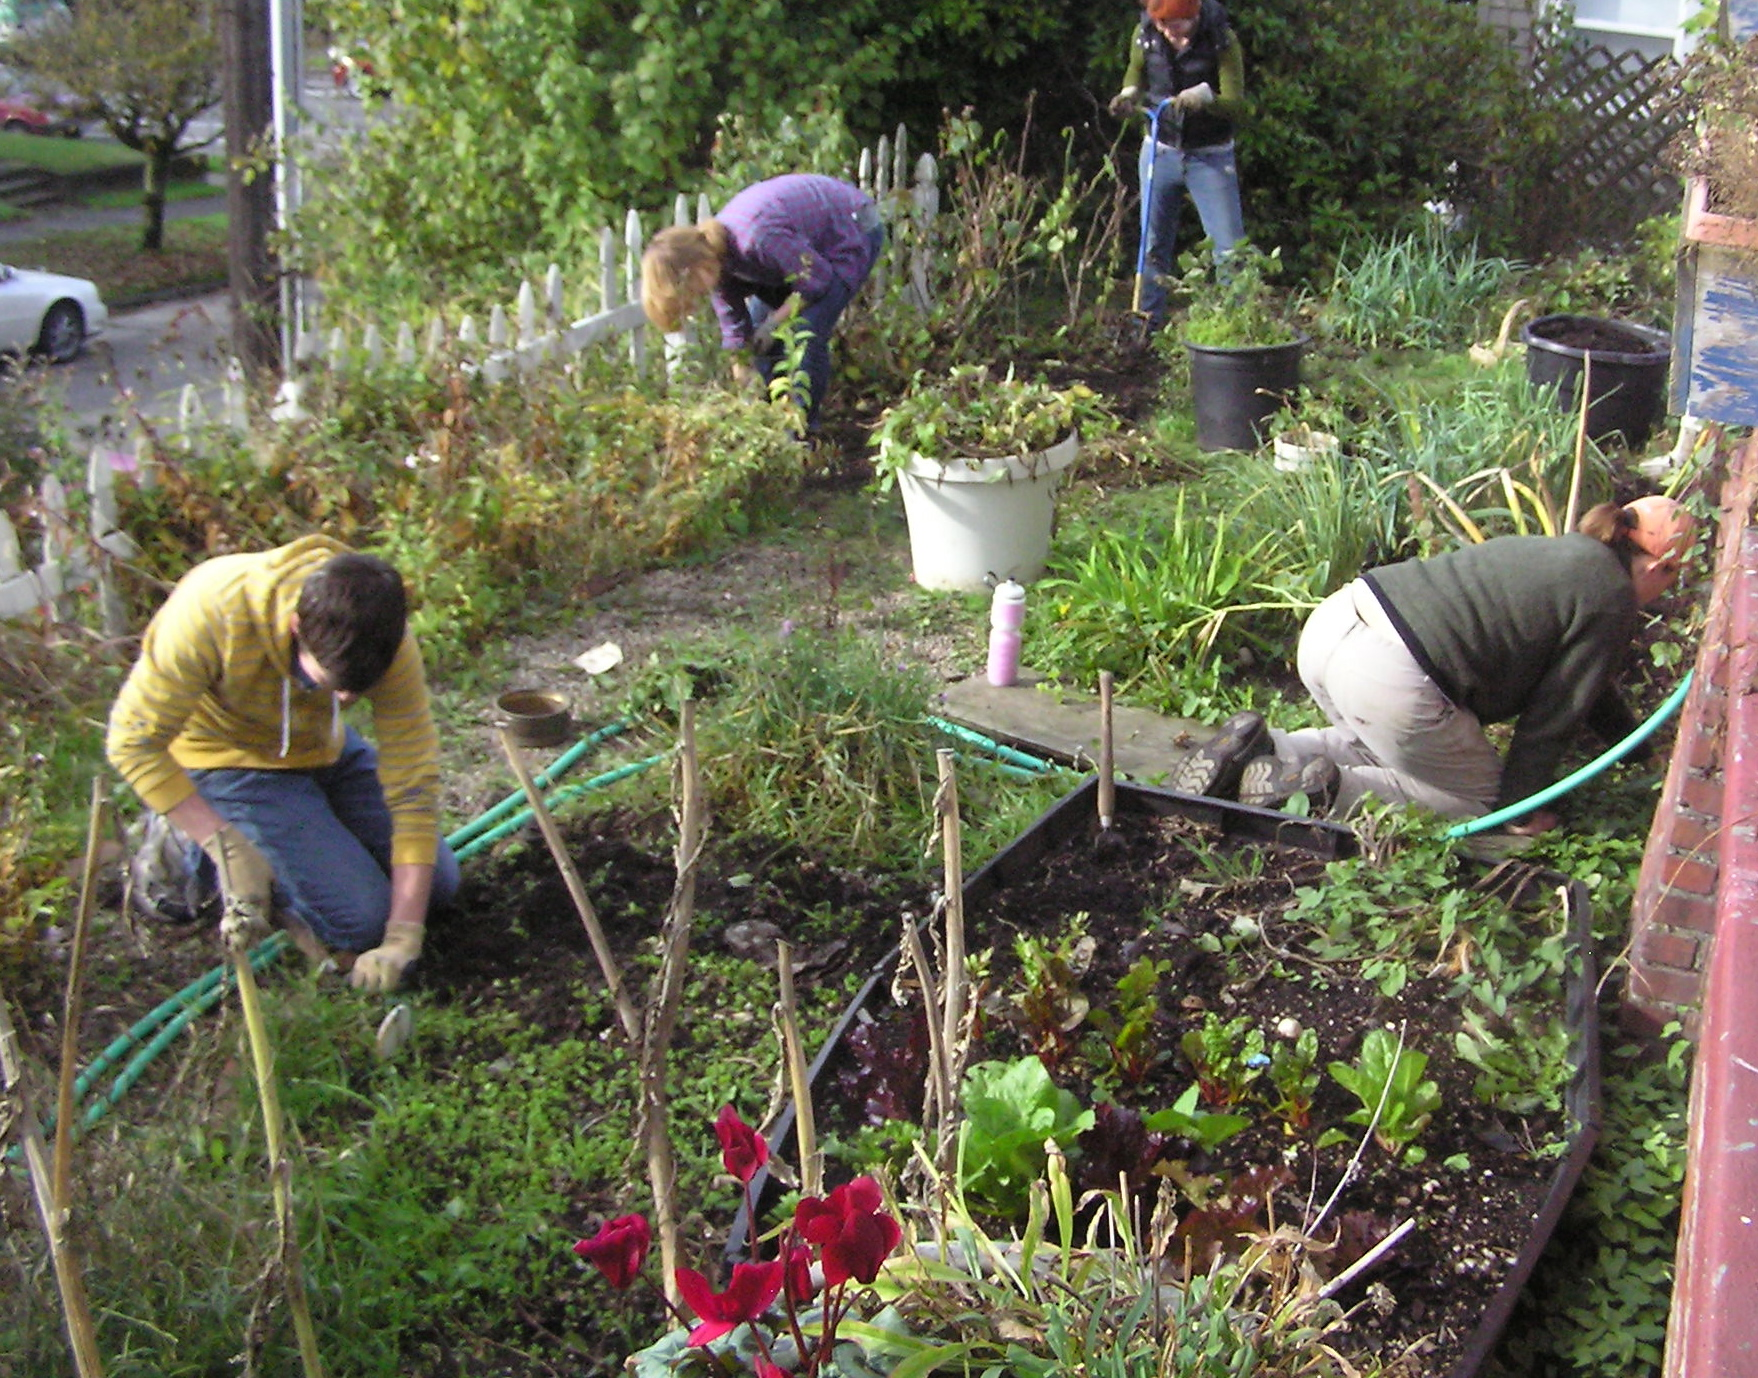 Garden day at the Mustard Seed House